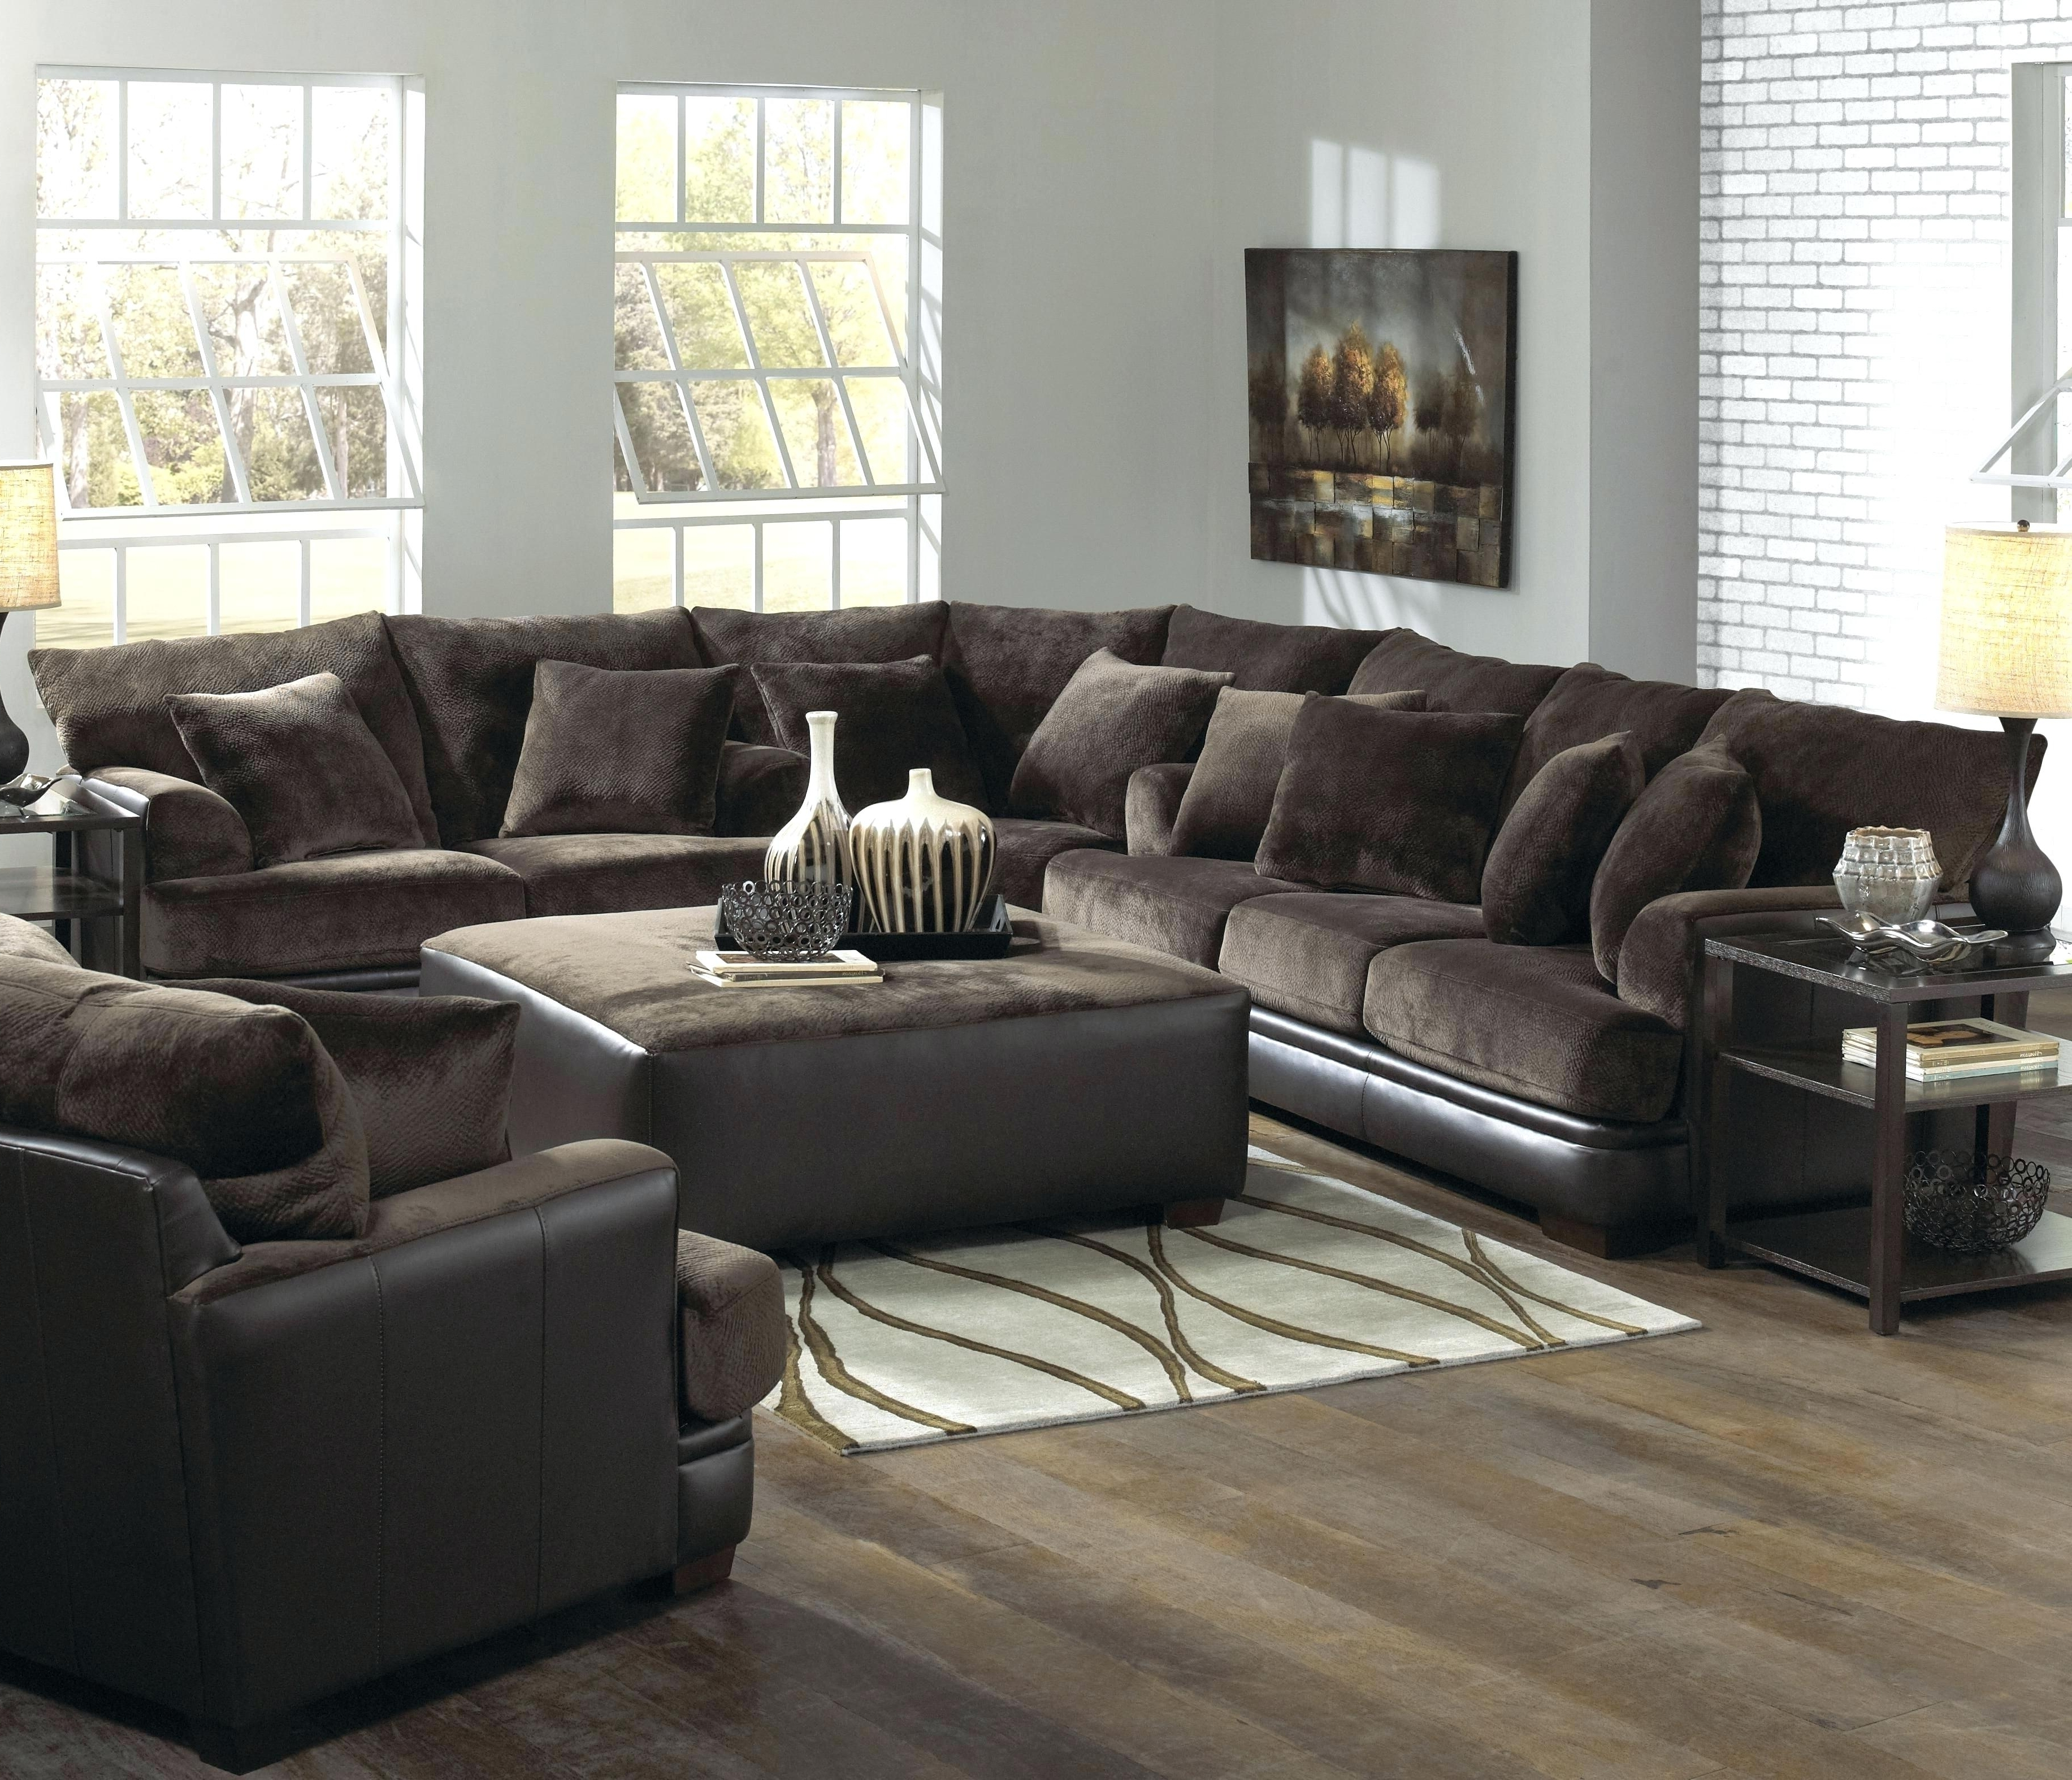 2018 Latest Gatineau Sectional Sofas Pertaining To Gatineau Sectional Sofas (Image 5 of 10)